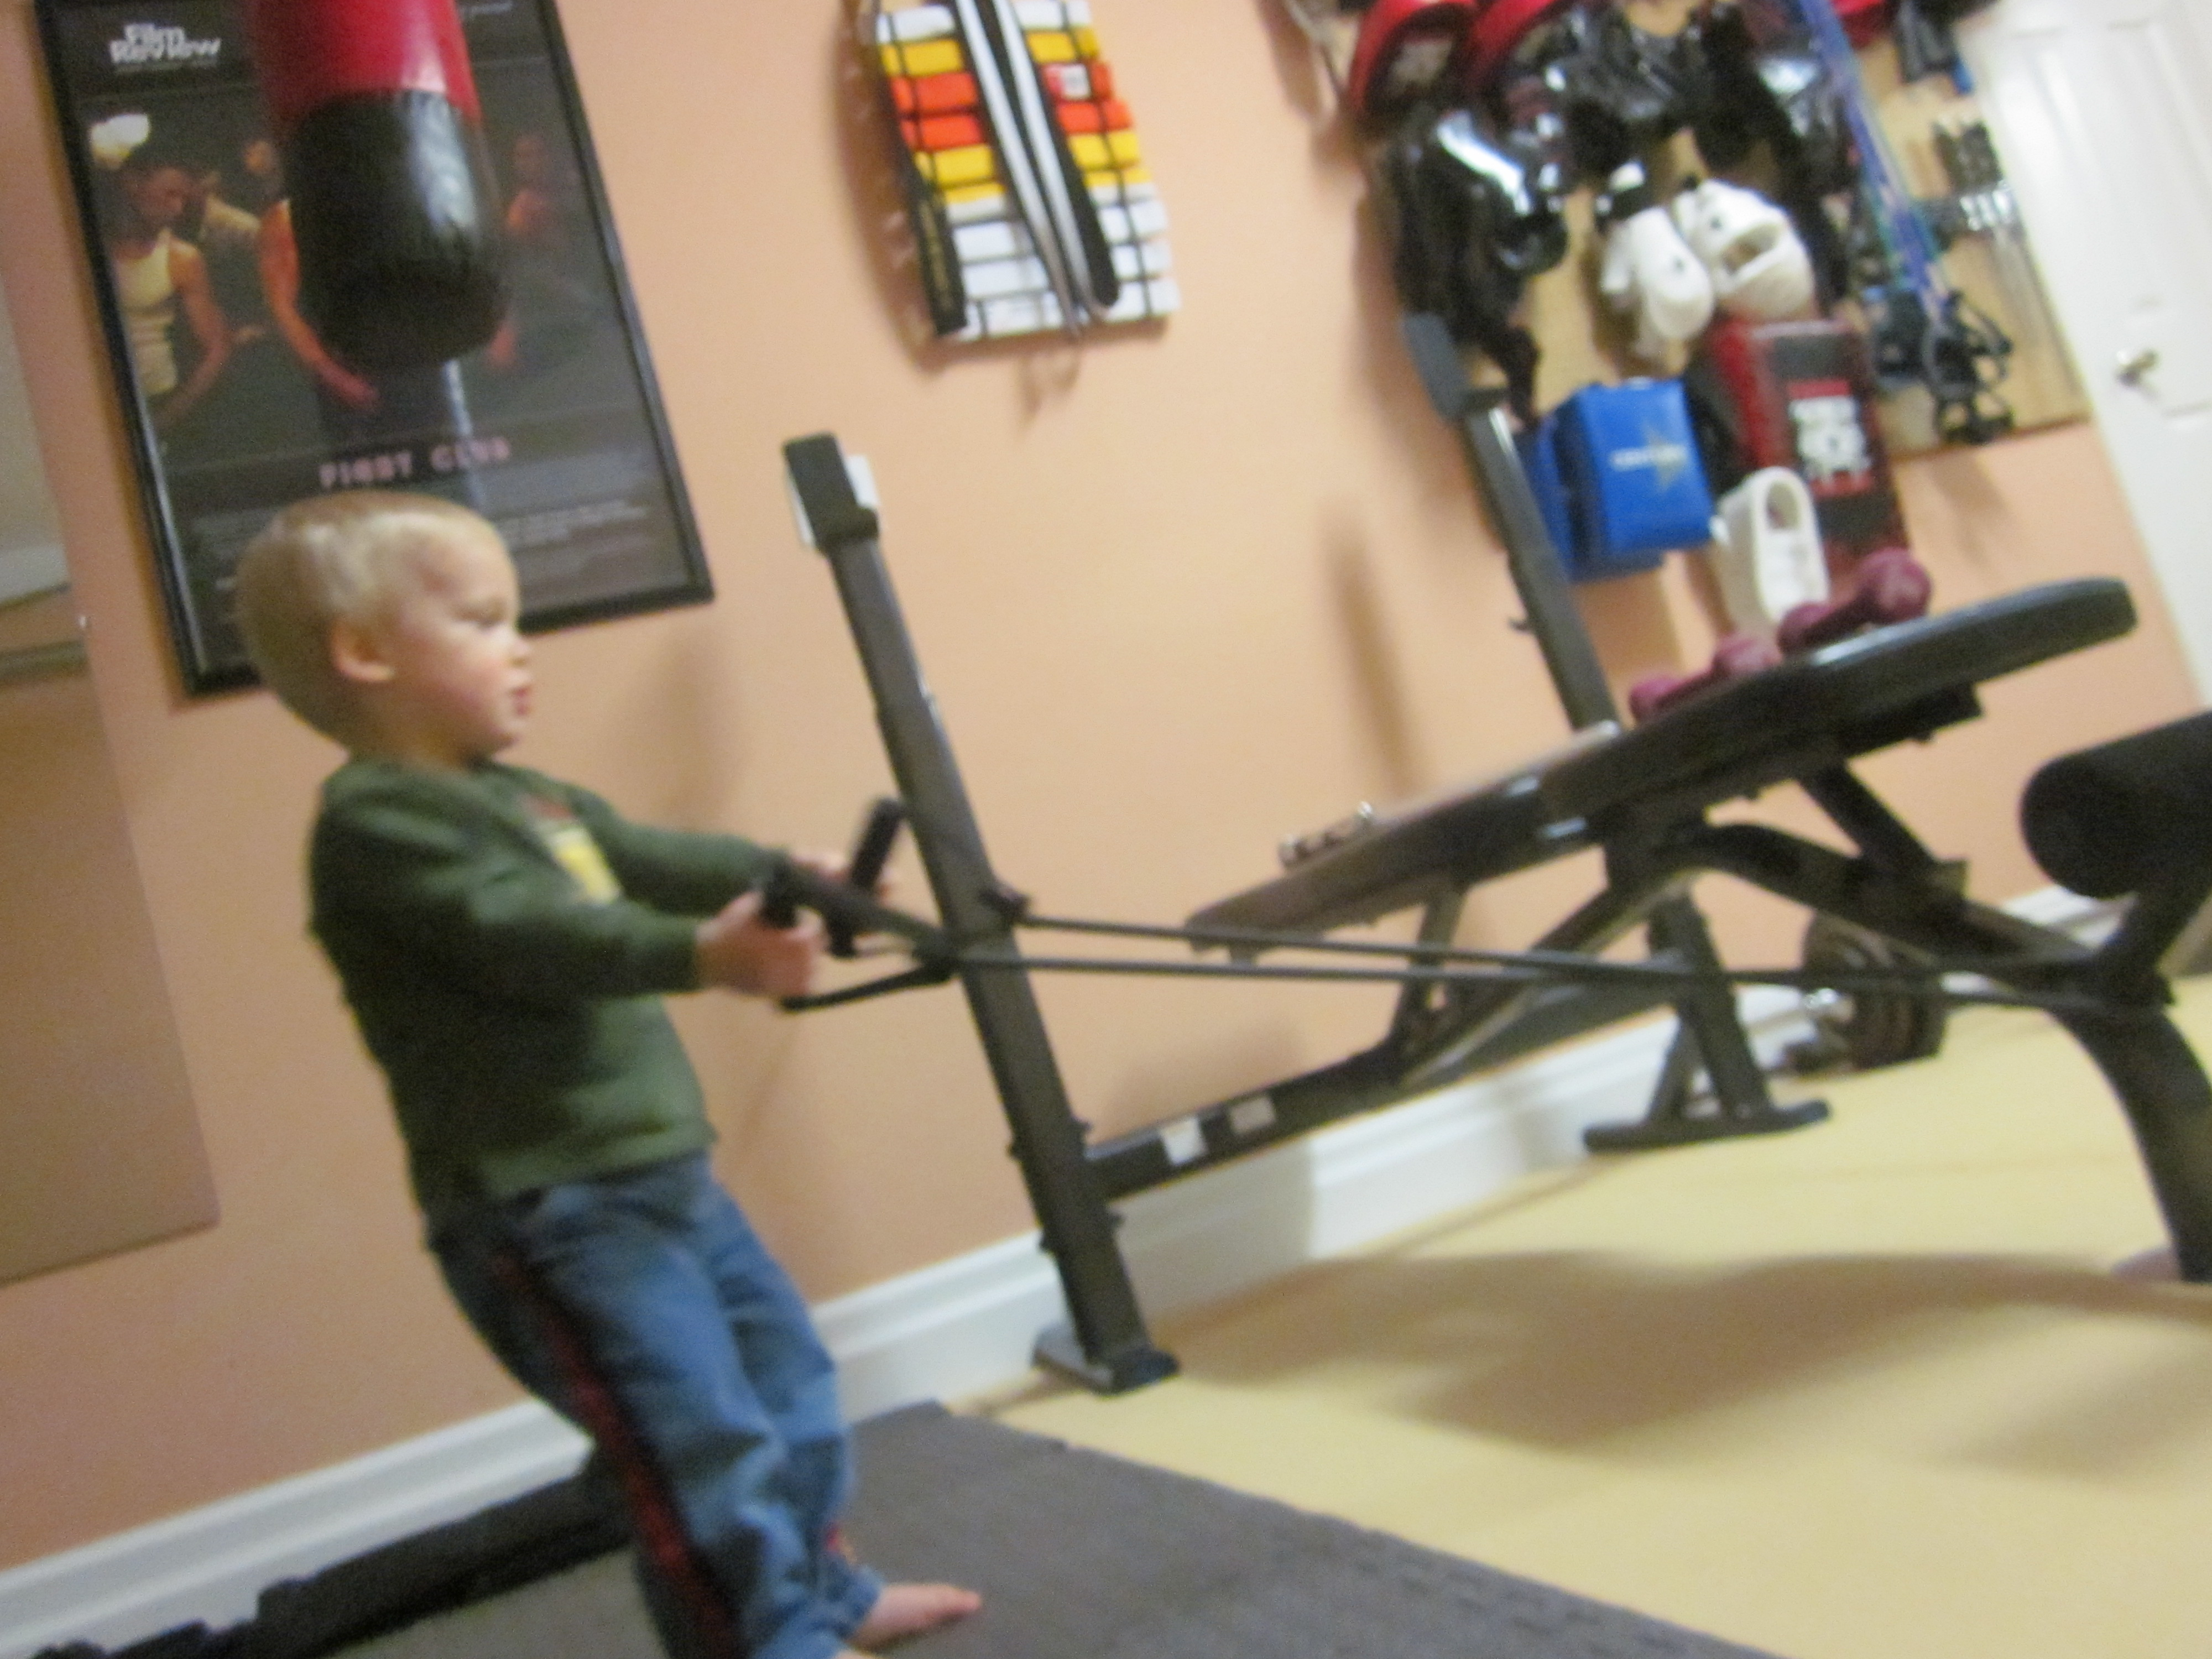 Garage Gym Warrior My Garage Gym Thanks To The Art Of Manliness Mastering The Art